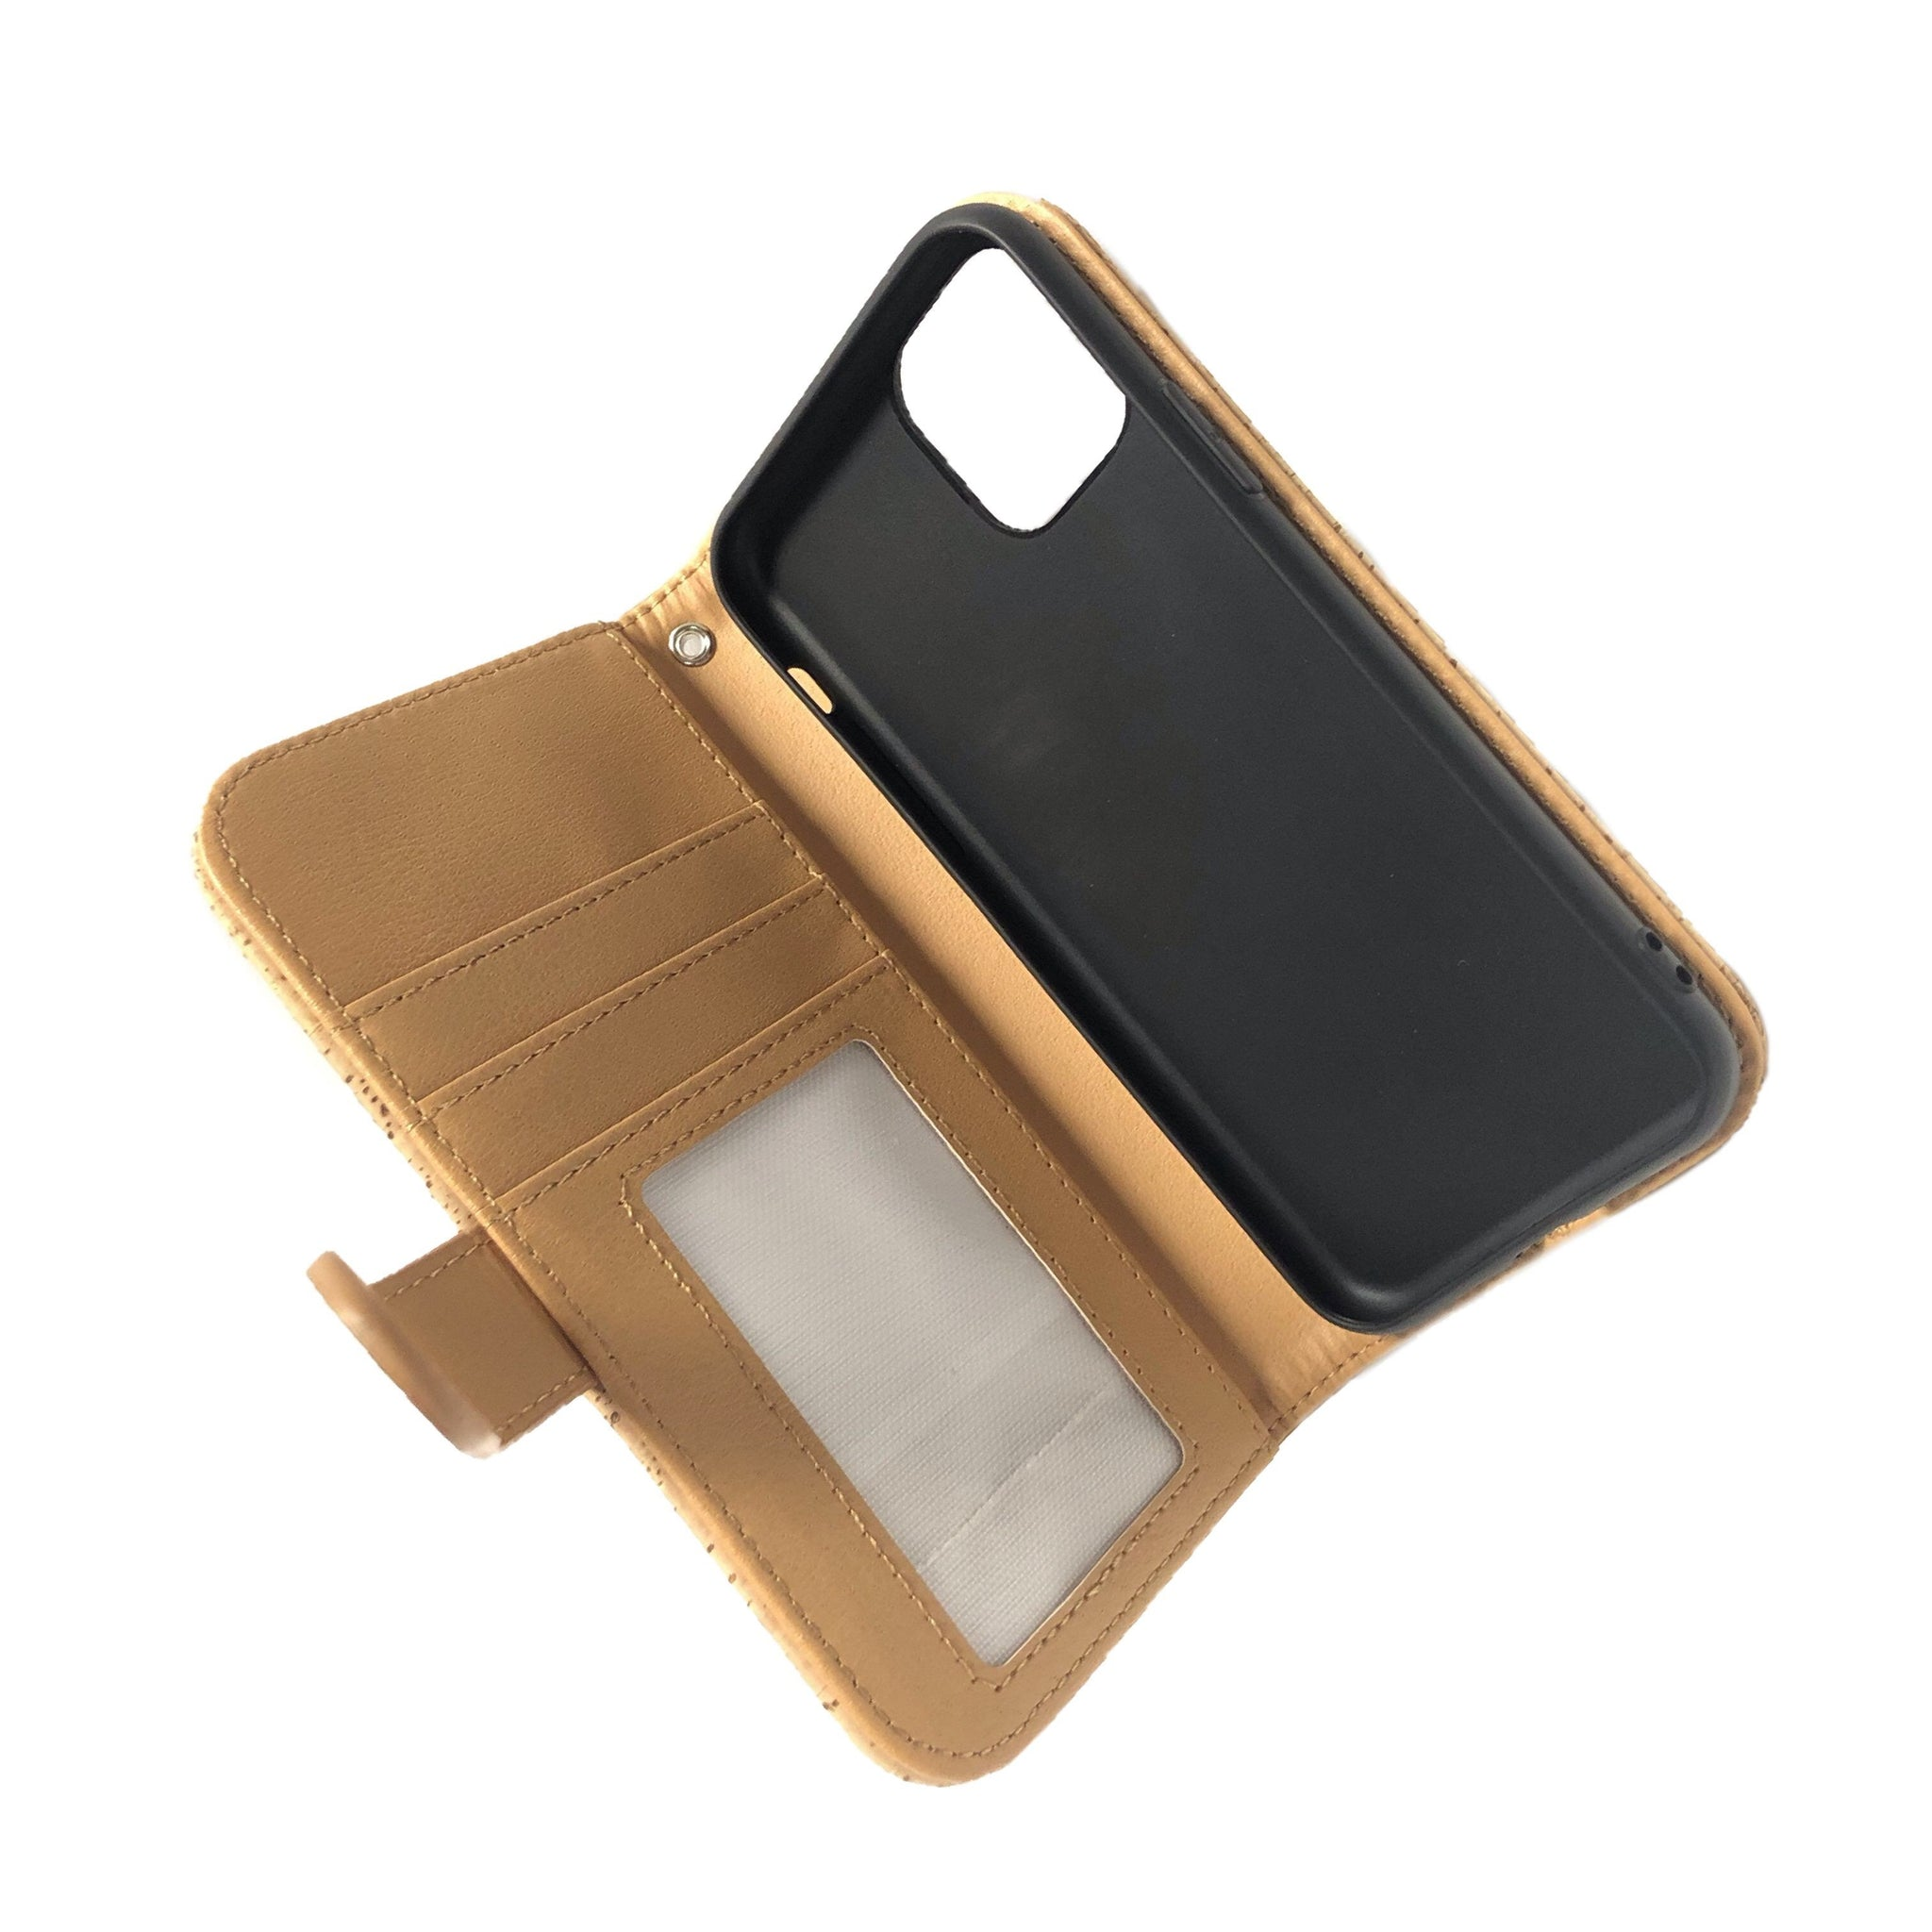 iPhone Wallet 11 Pro (5.8-inch Display)